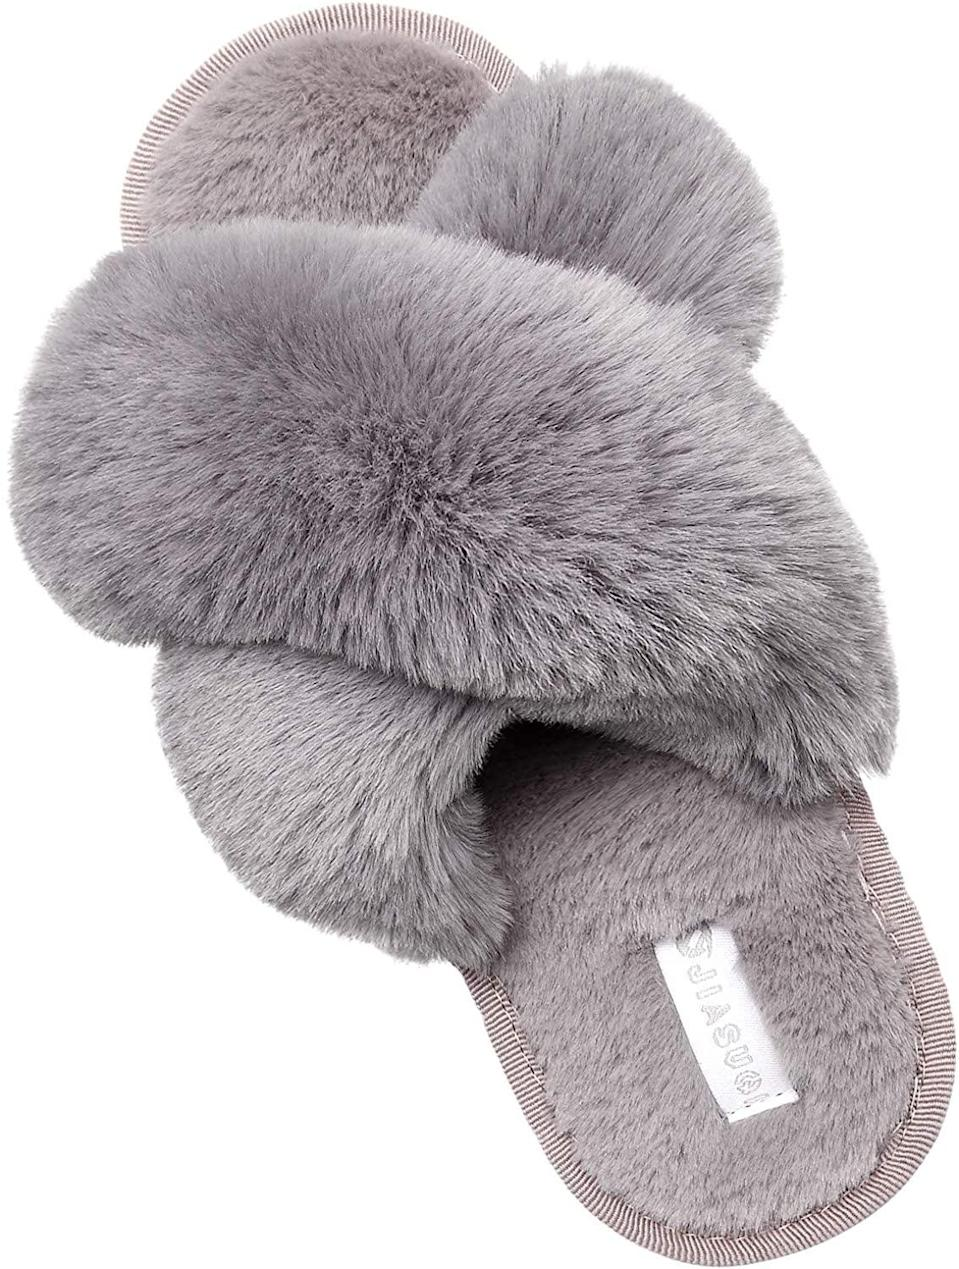 <p>These <span>Jiasuqi Cross Open Toe Fuzzy Fluffy House Slippers</span> ($23) are so cozy and comfortable yet look so classy and bougie.</p>